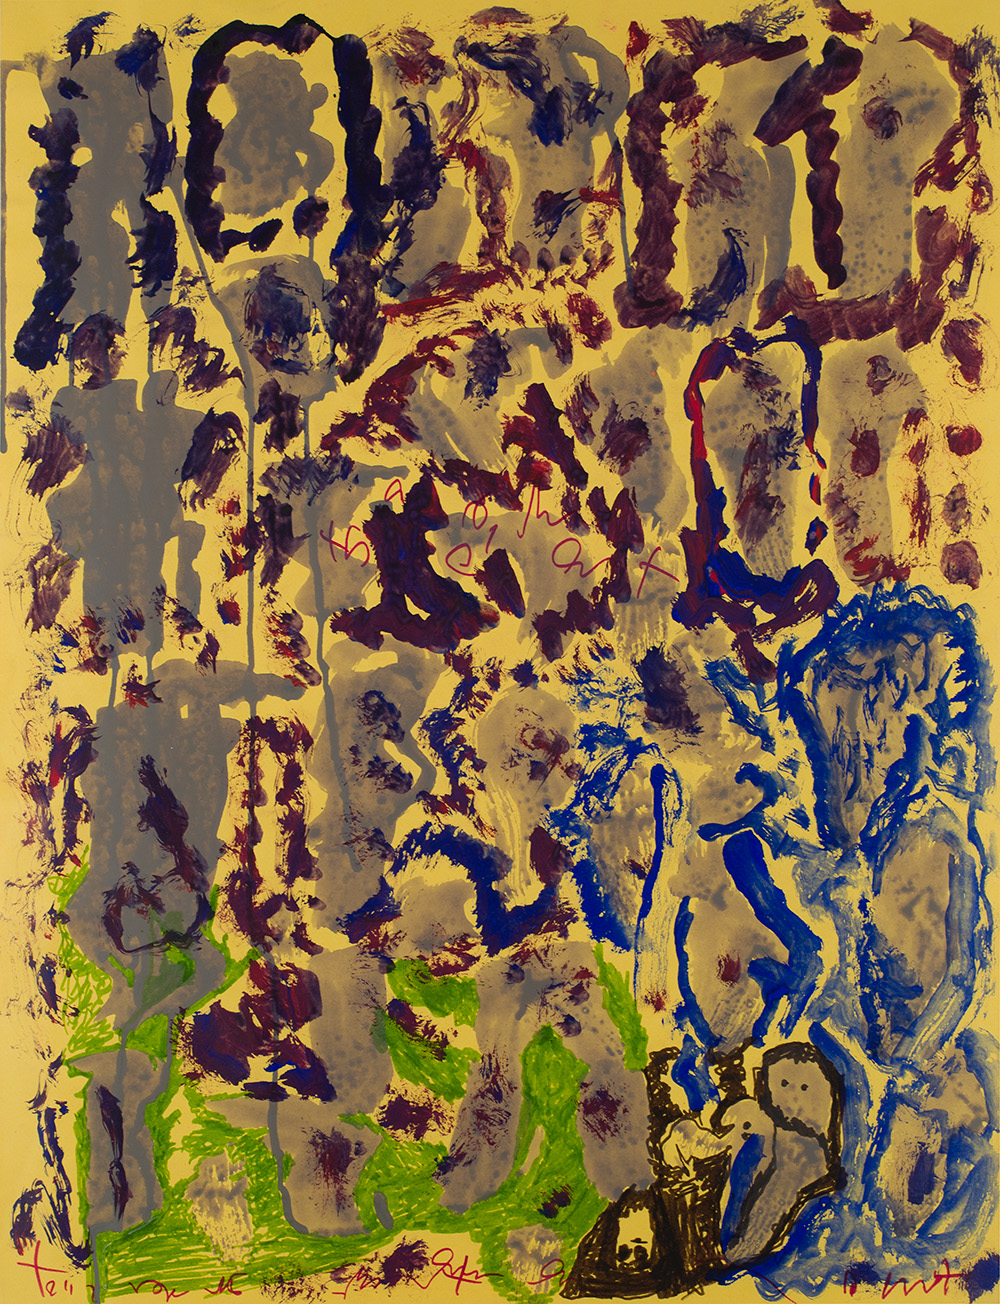 J.B. Murray    Untitled  , c. 1978-1988 Tempera and ink on paper 25 x 19 inches 63.5 x 48.3 cm JBM 471